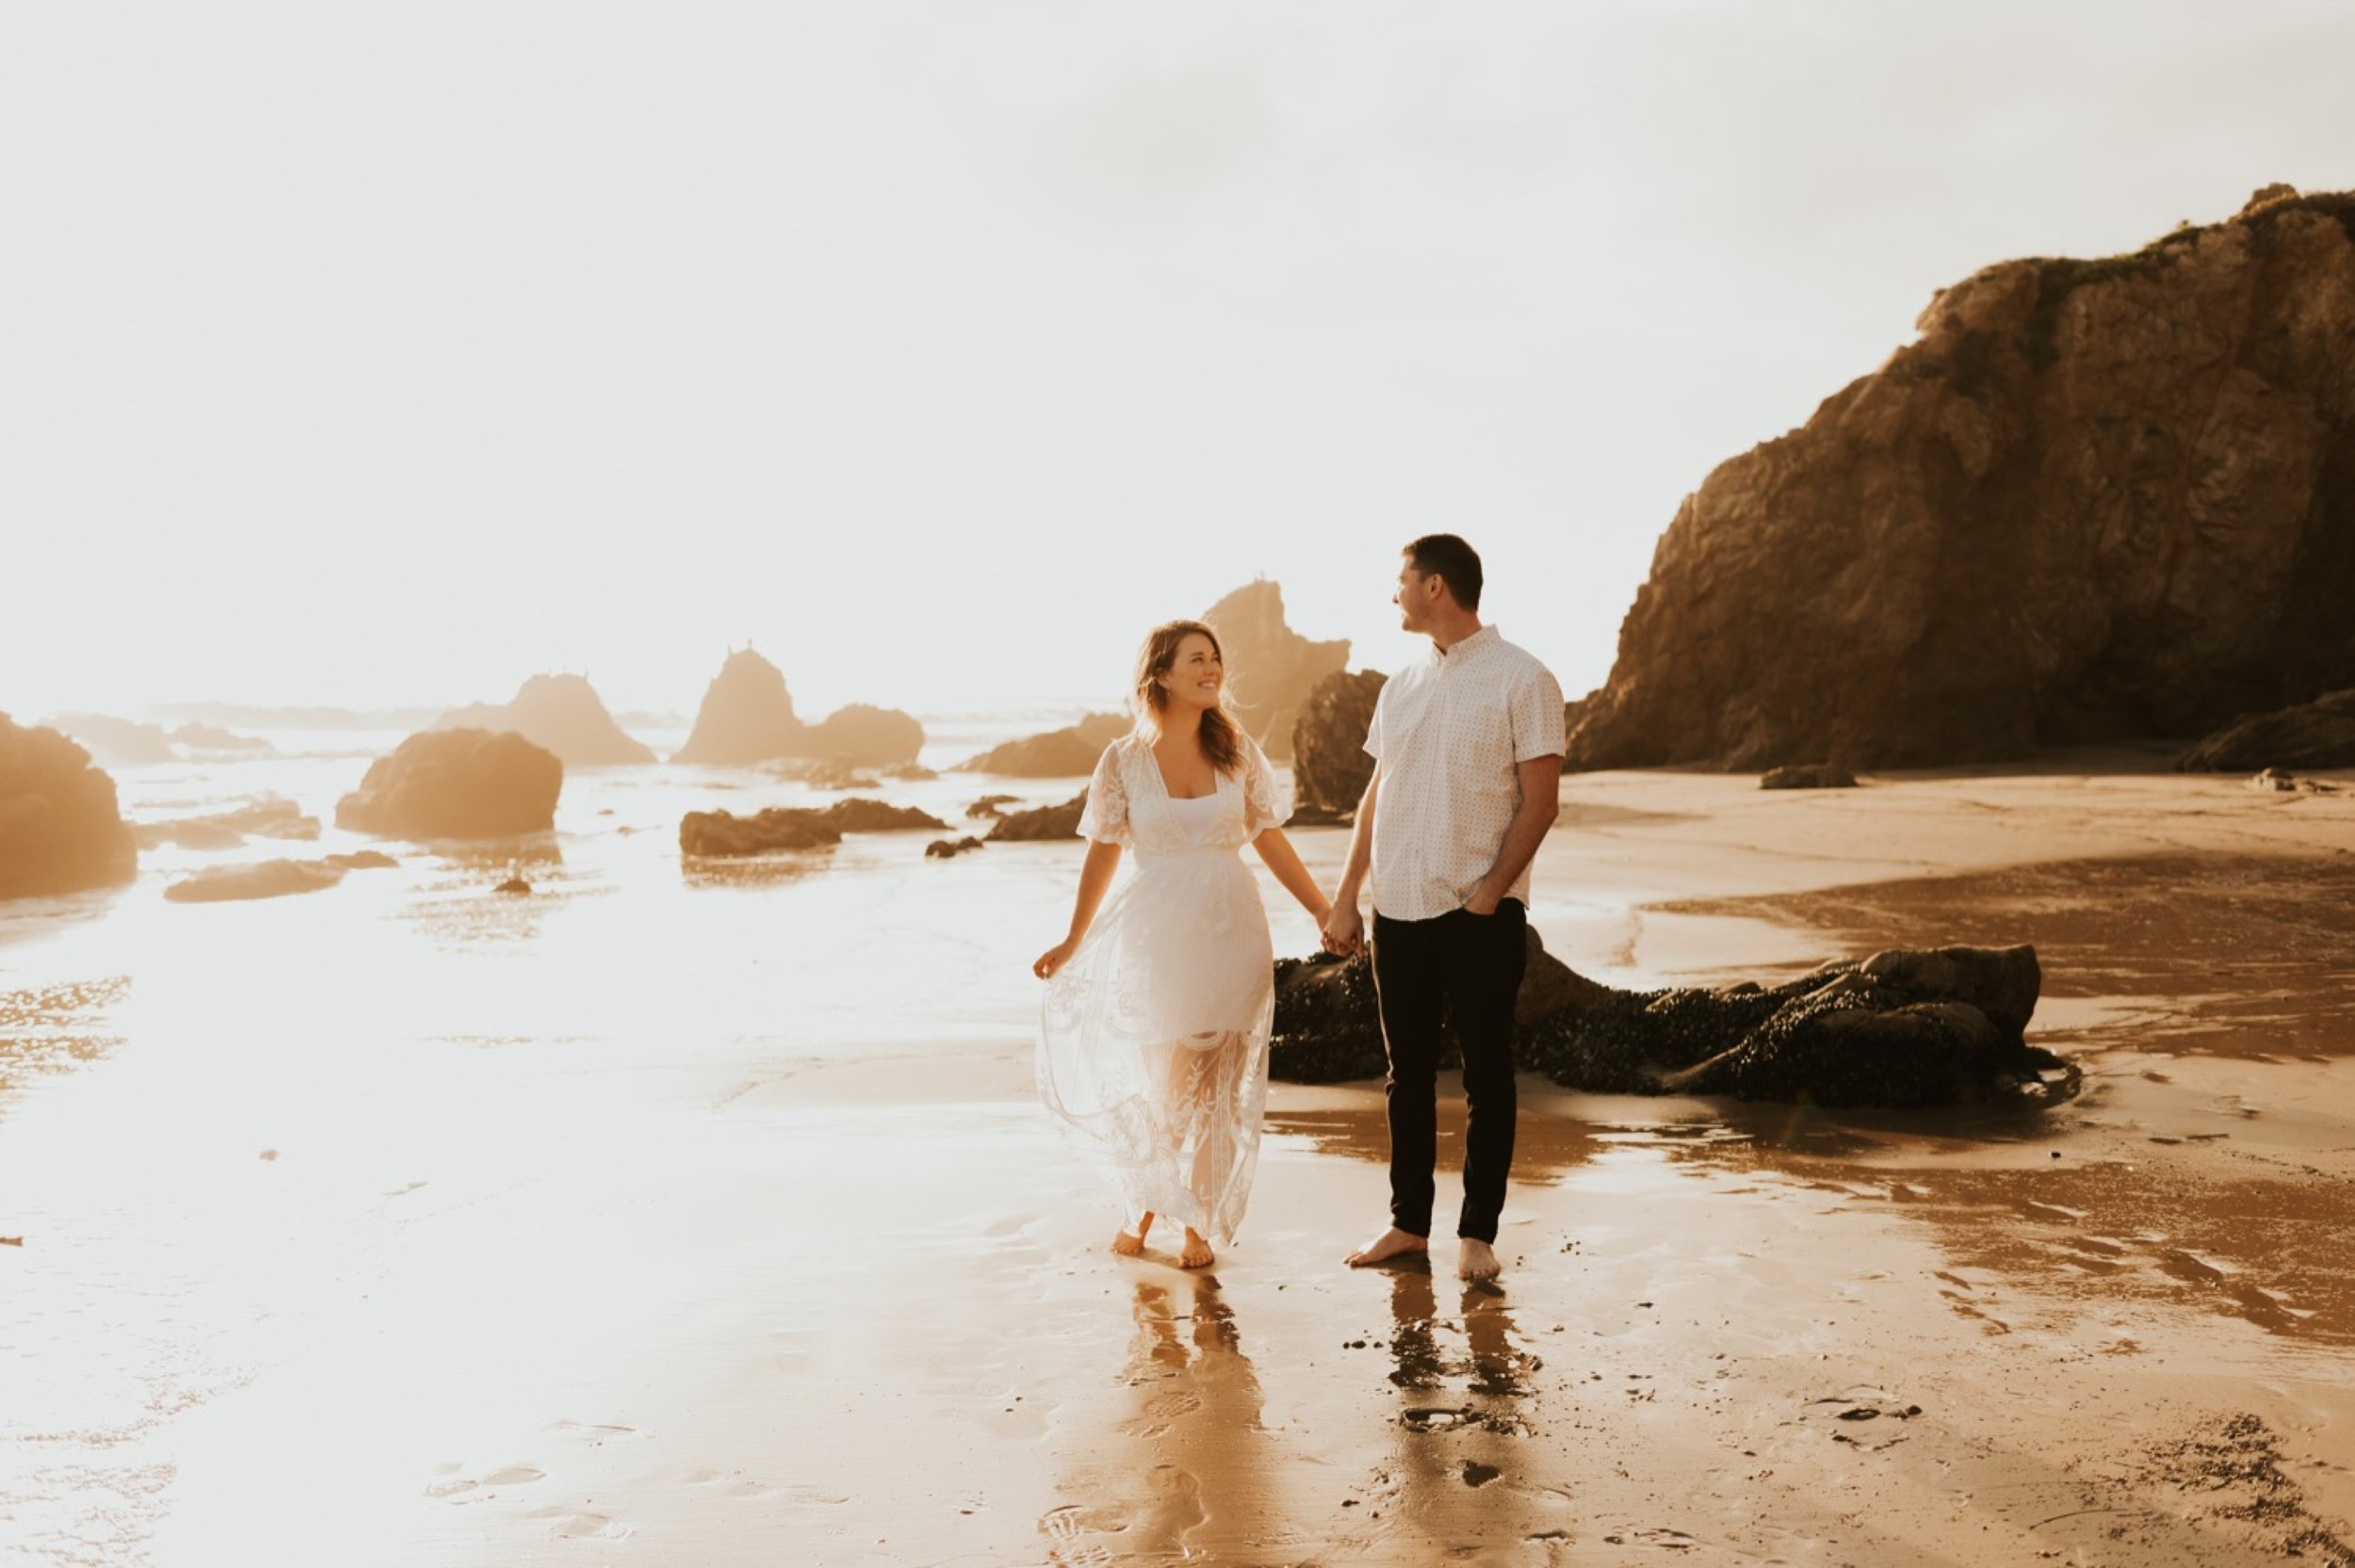 Sunset Engagement Session at El Matador Beach, Malibu by Carrie Rogers Photography